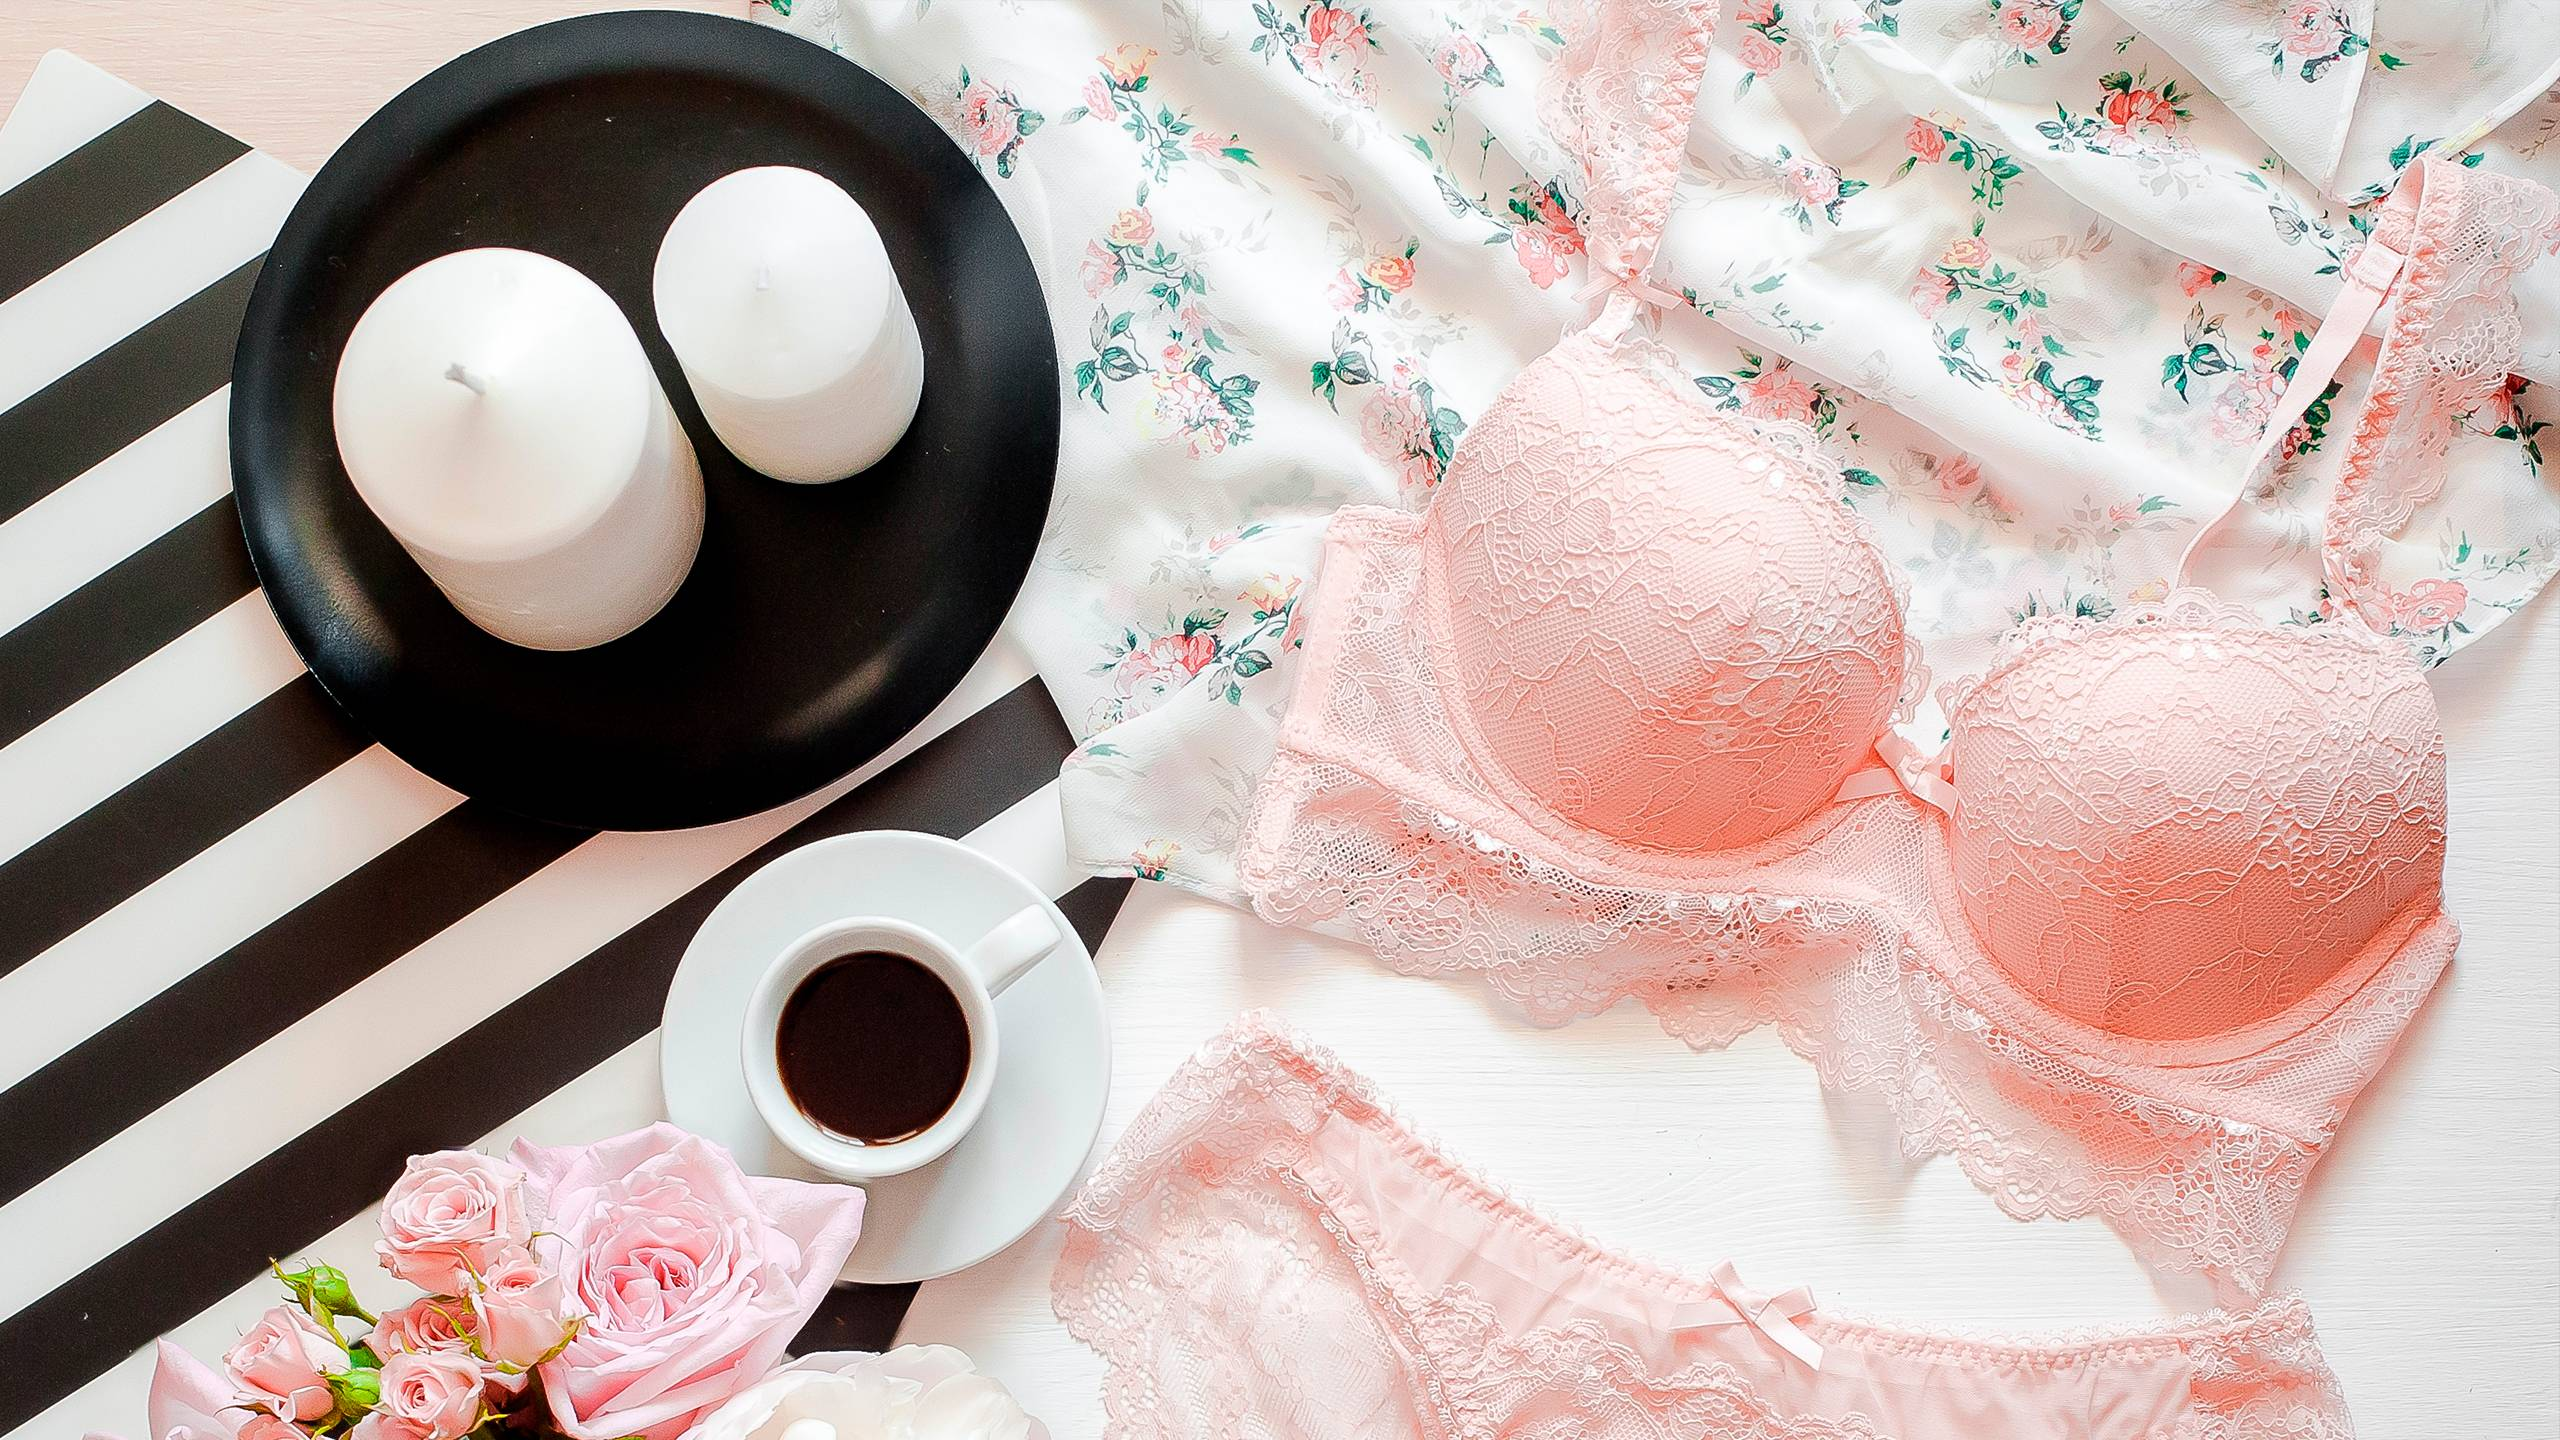 Lingerie Realm – your loyal partner and friend